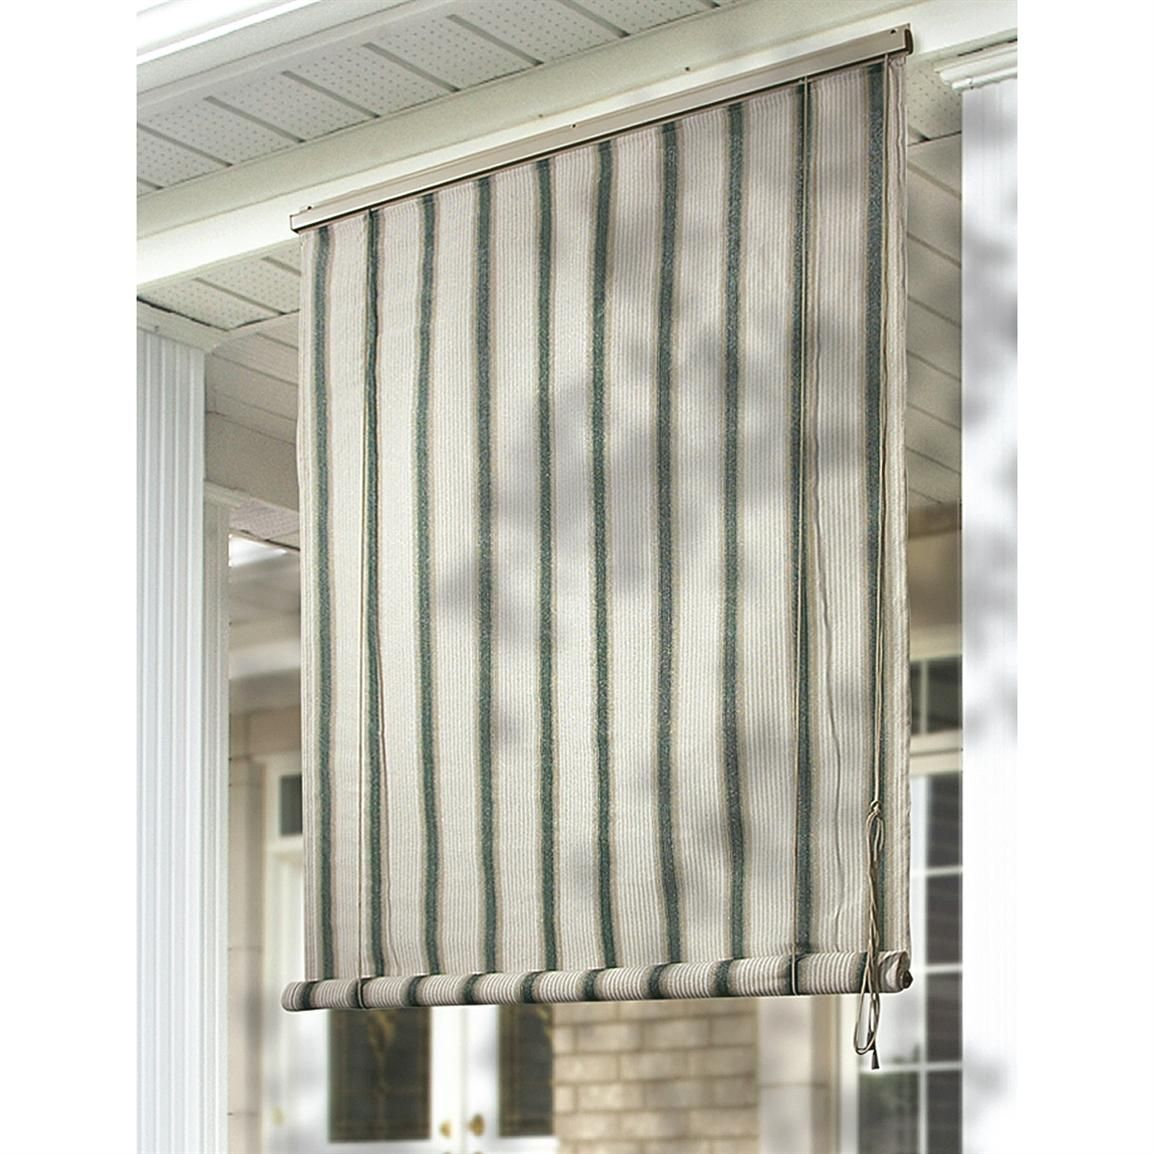 Roll Up Blinds Coolaroo R Classic Roll Up Shades Home Decor Awning Shade Classic